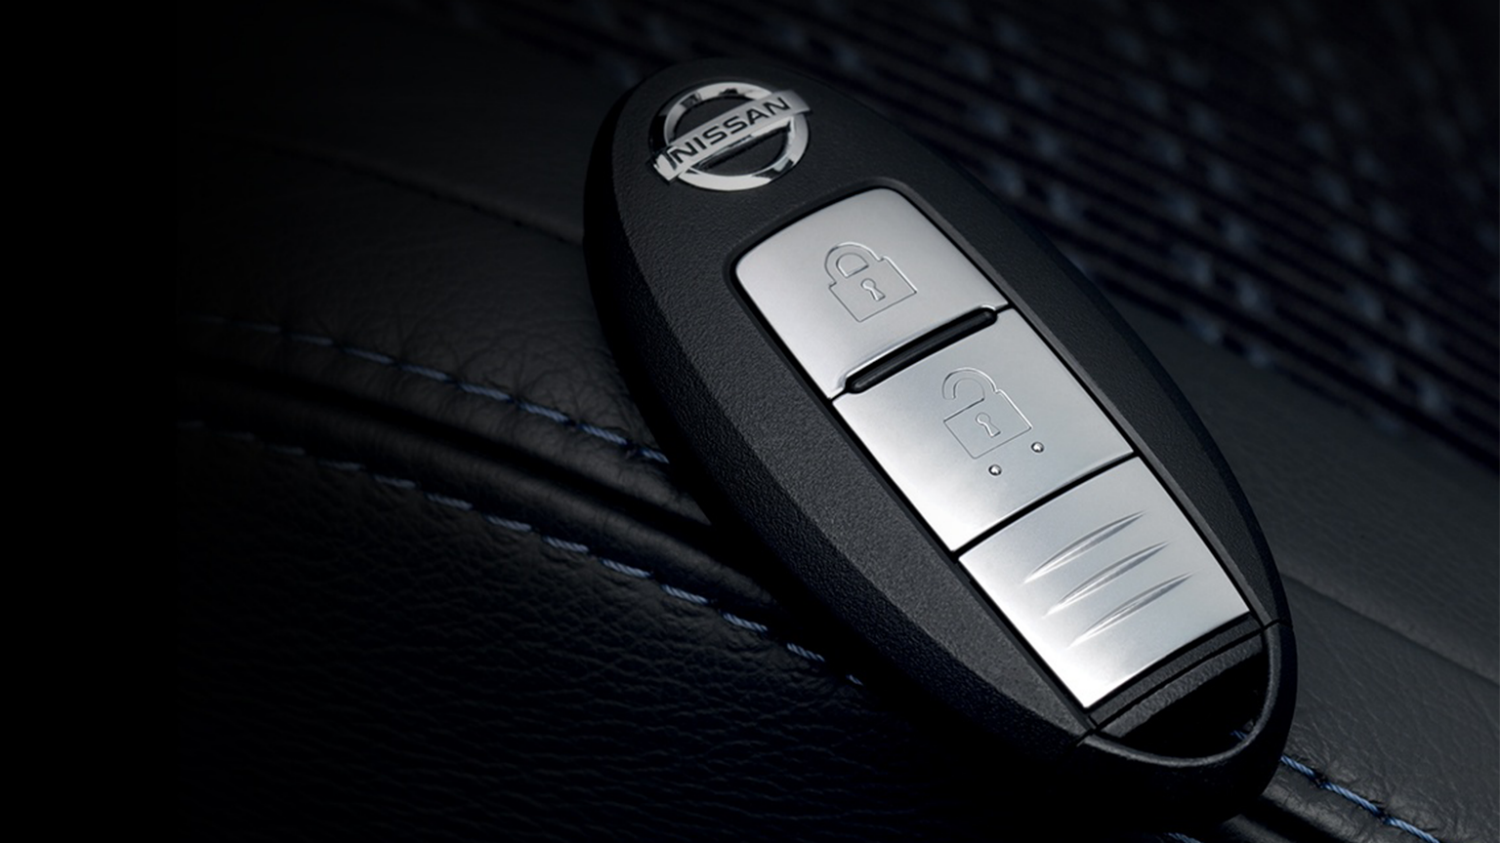 Nissan PULSAR berlina - Intelligent Key